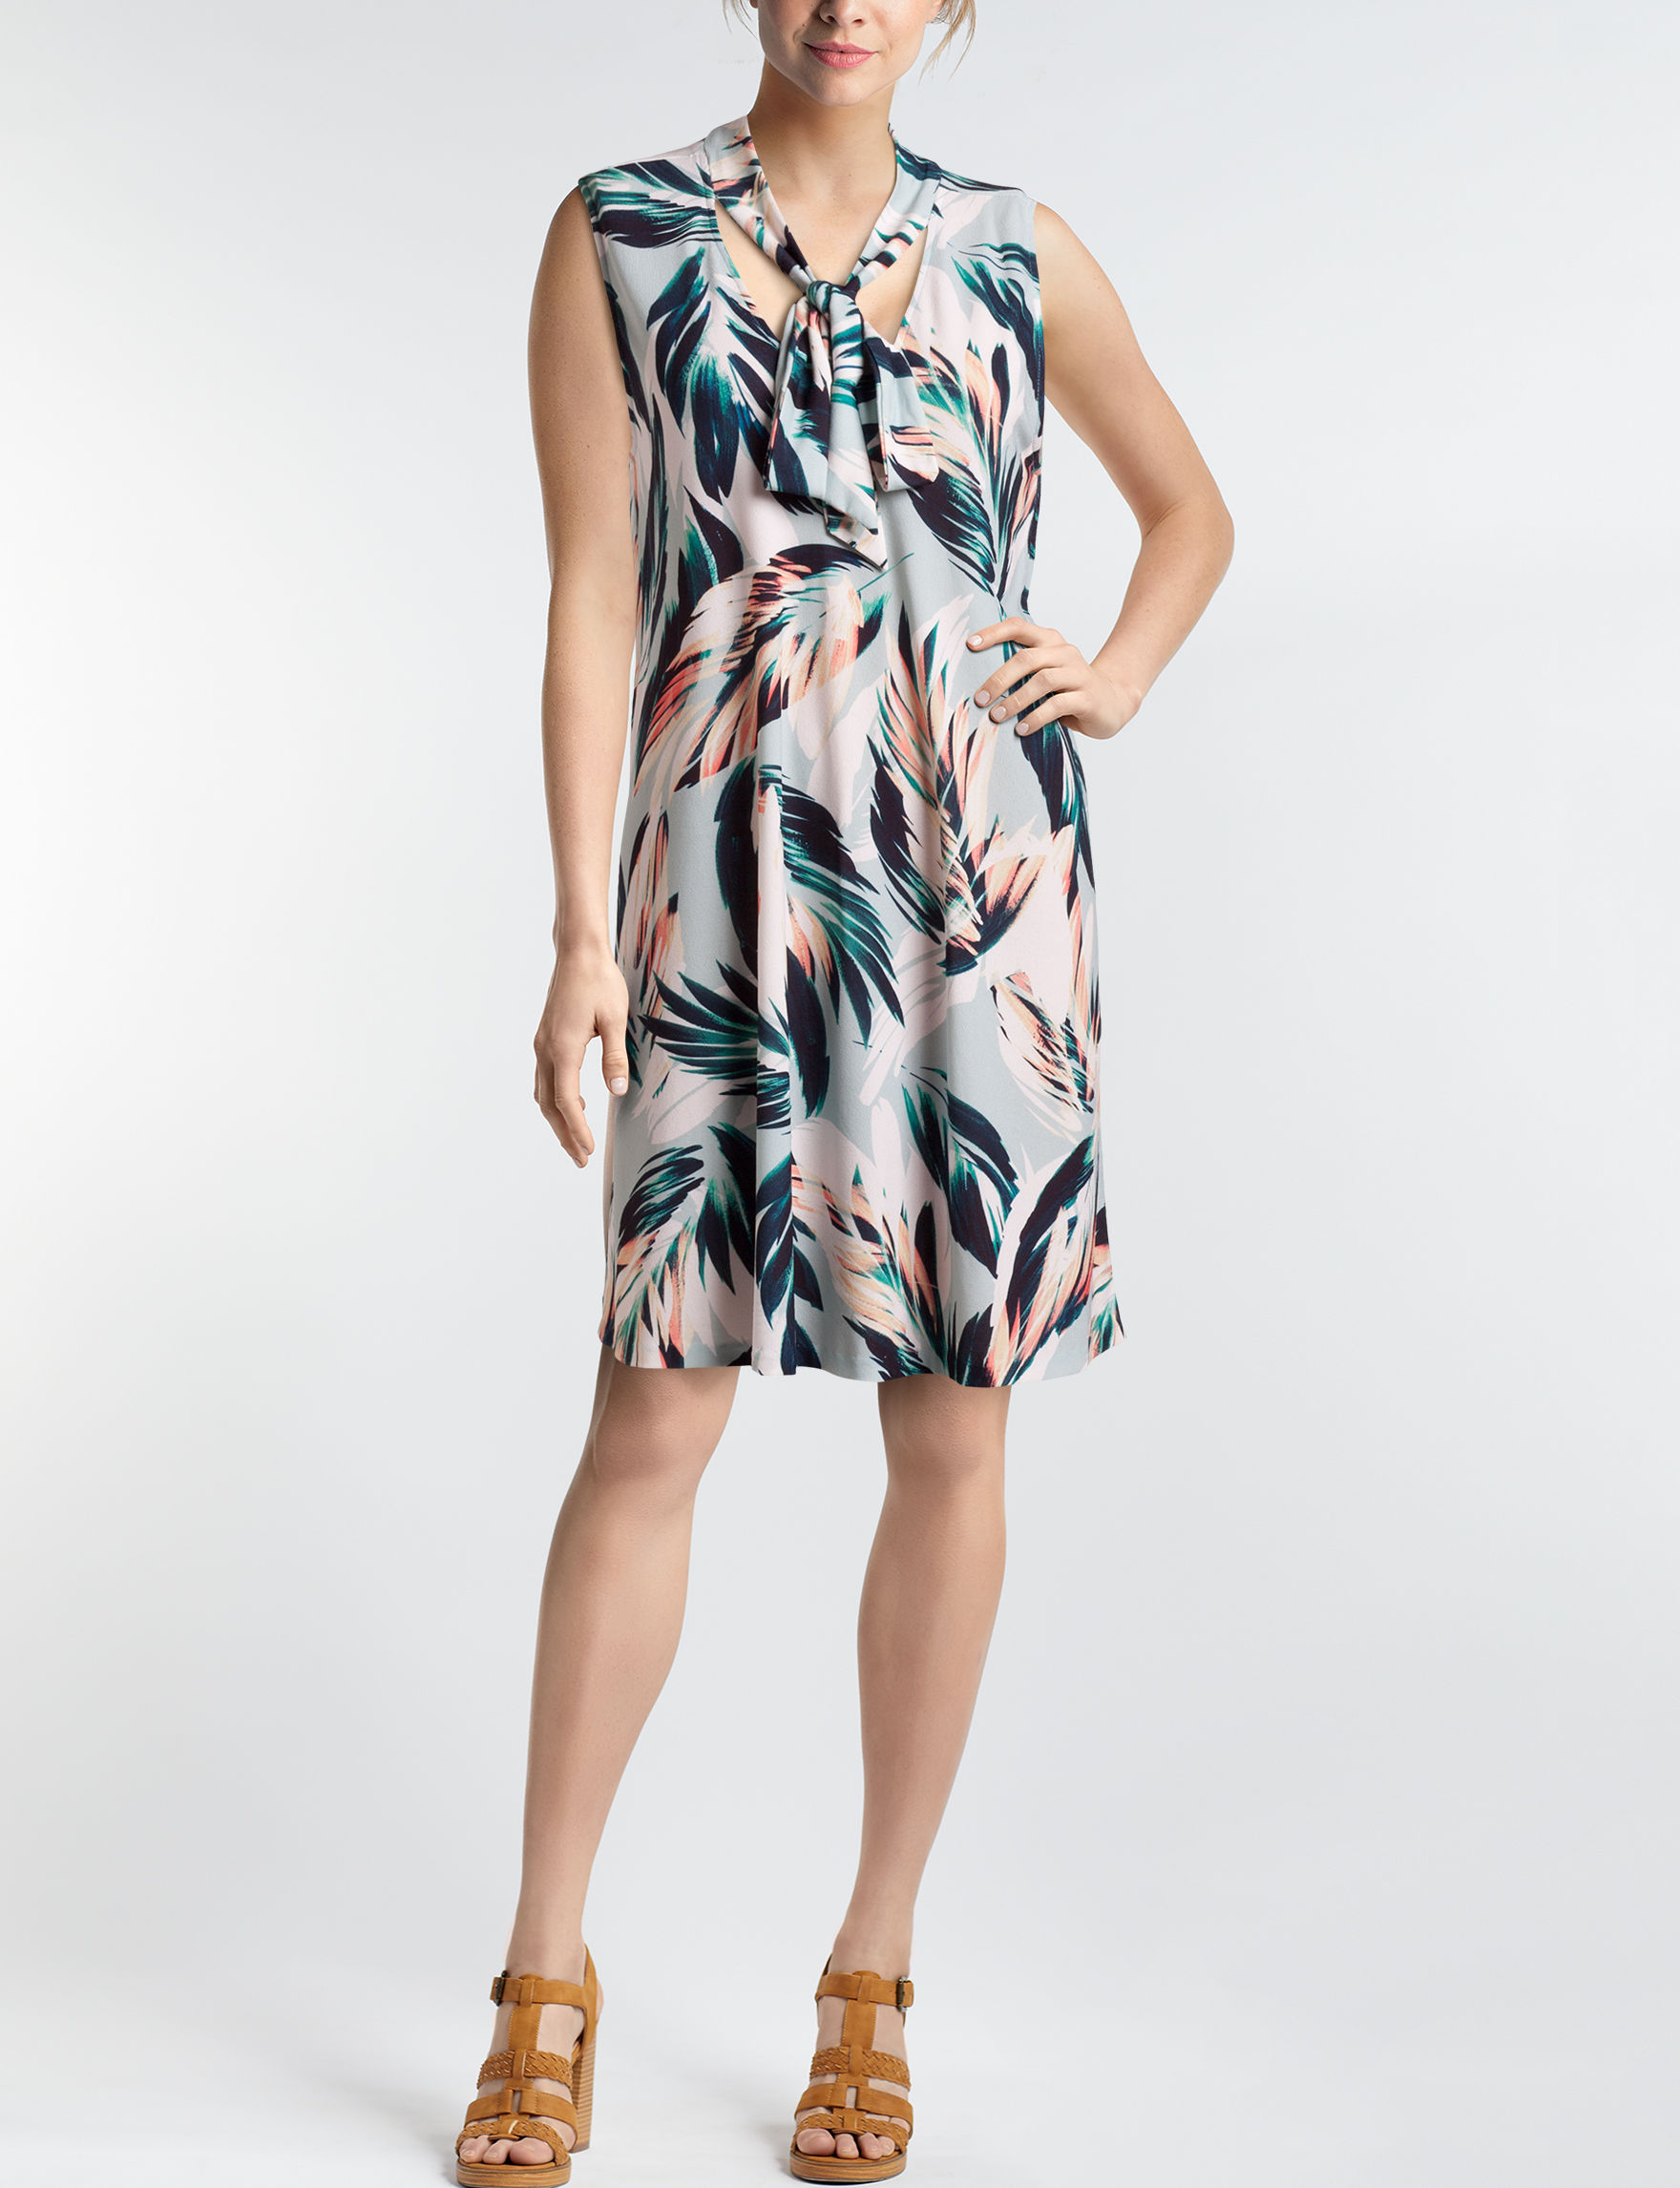 Beige by ECI Grey Multi Everyday & Casual Shift Dresses